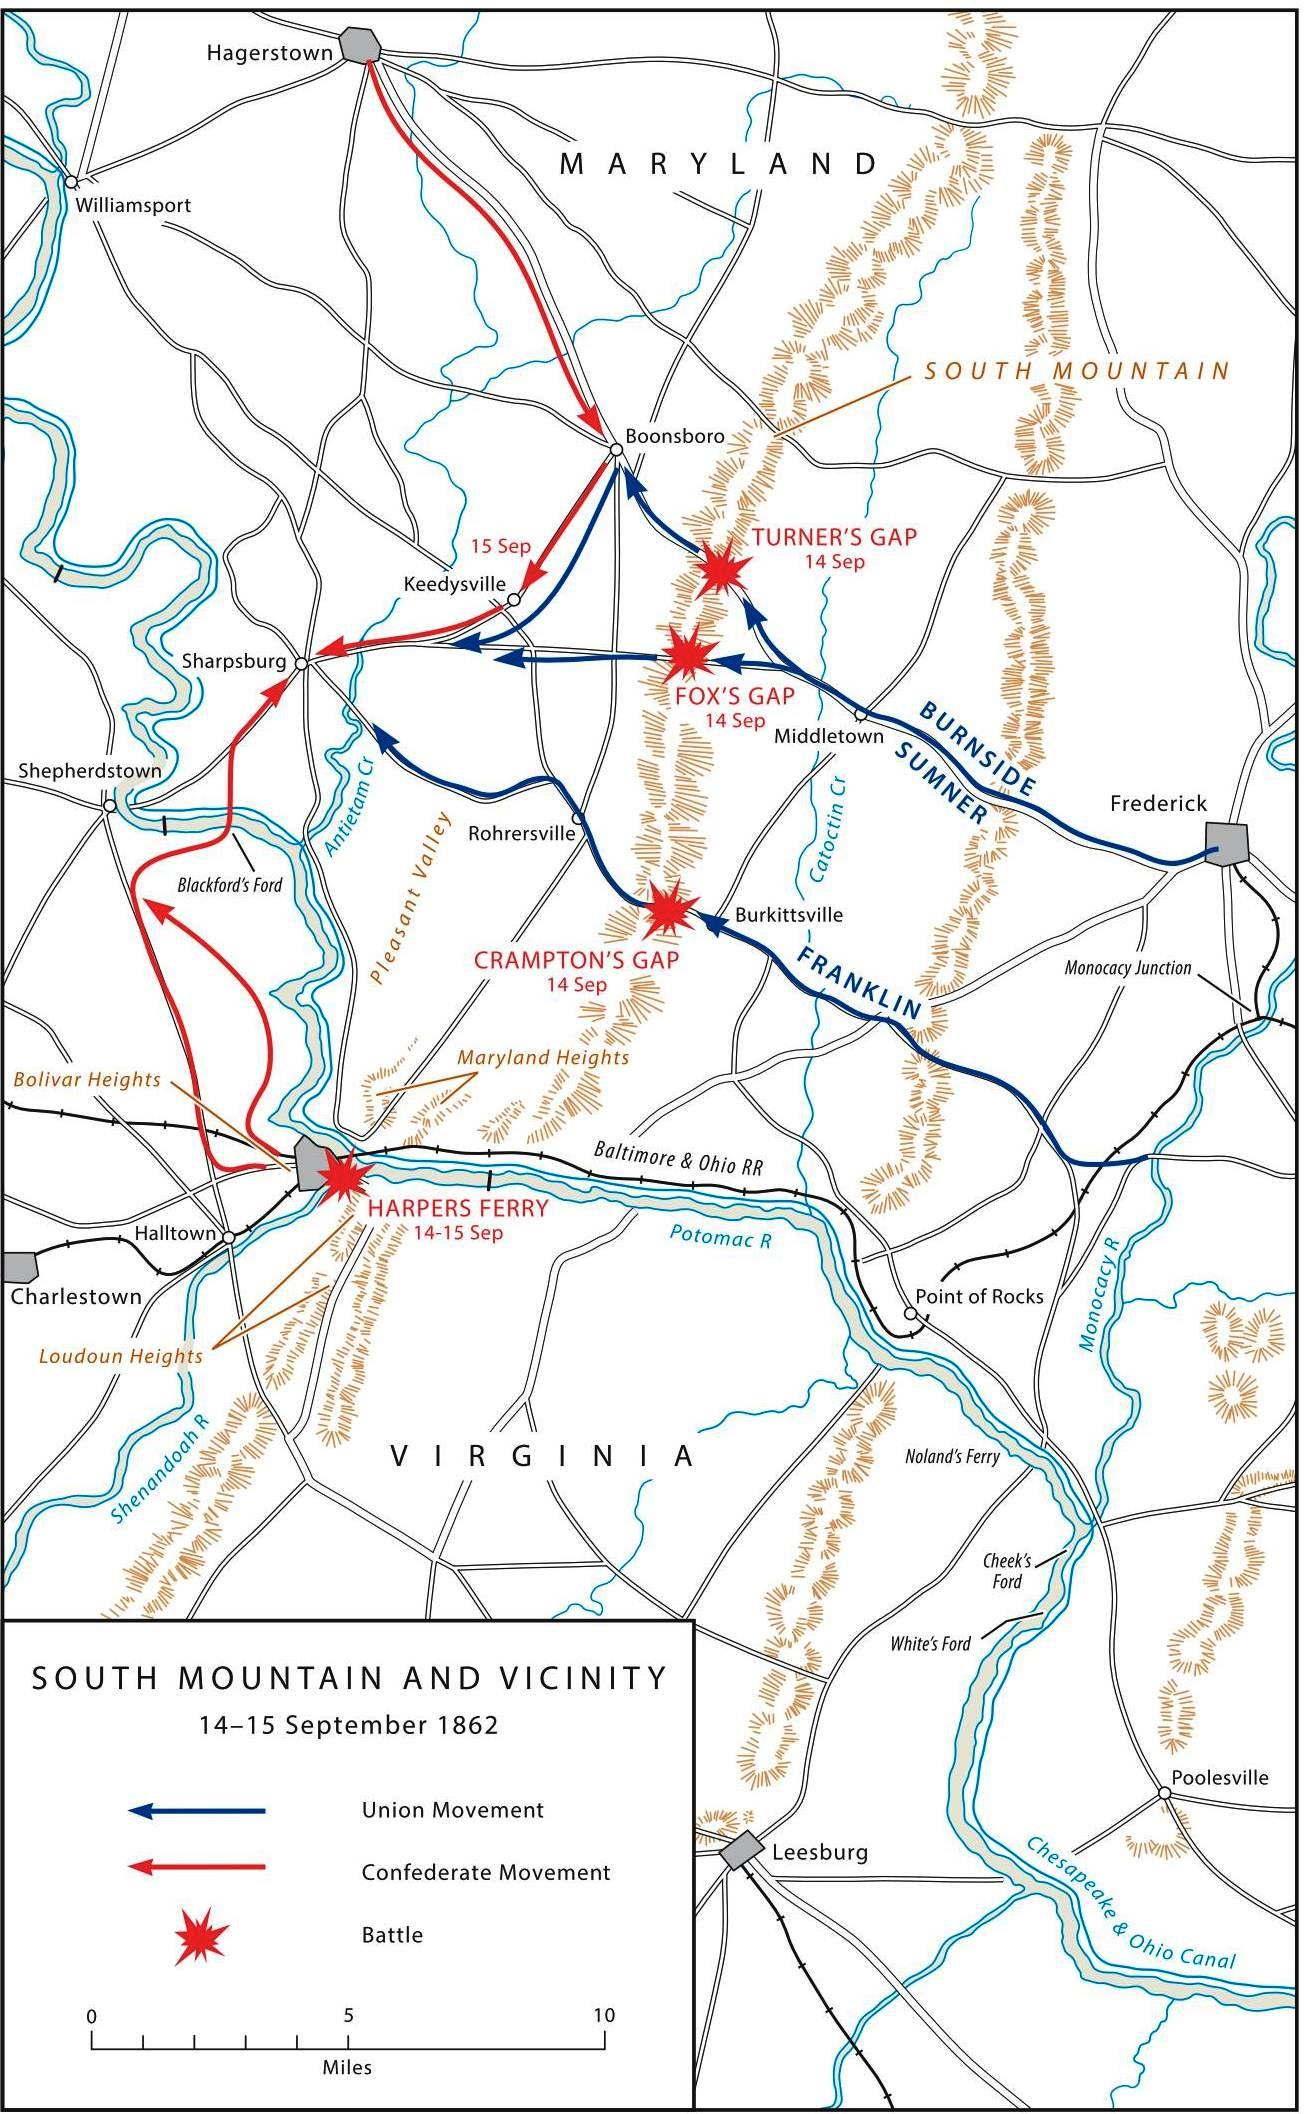 FileUS ARMY MARYLAND CAMPAIGN MAP Jpg Wikipedia - Map us open